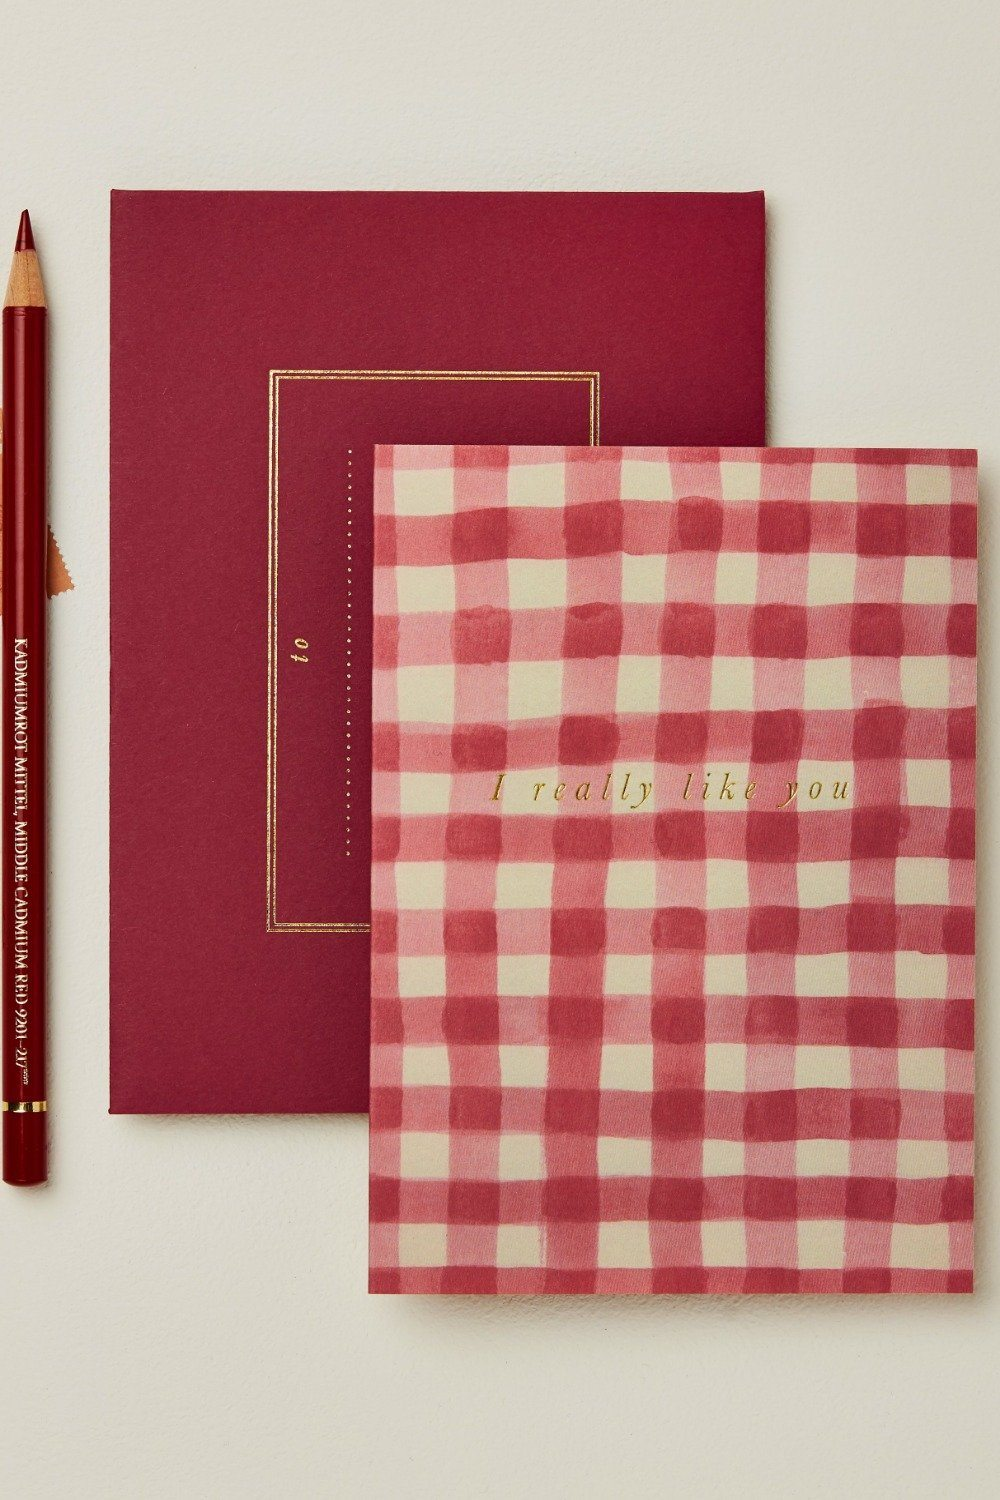 Wanderlust Card - Red Gingham I Really Like You Gifts & Stationery Wanderlust